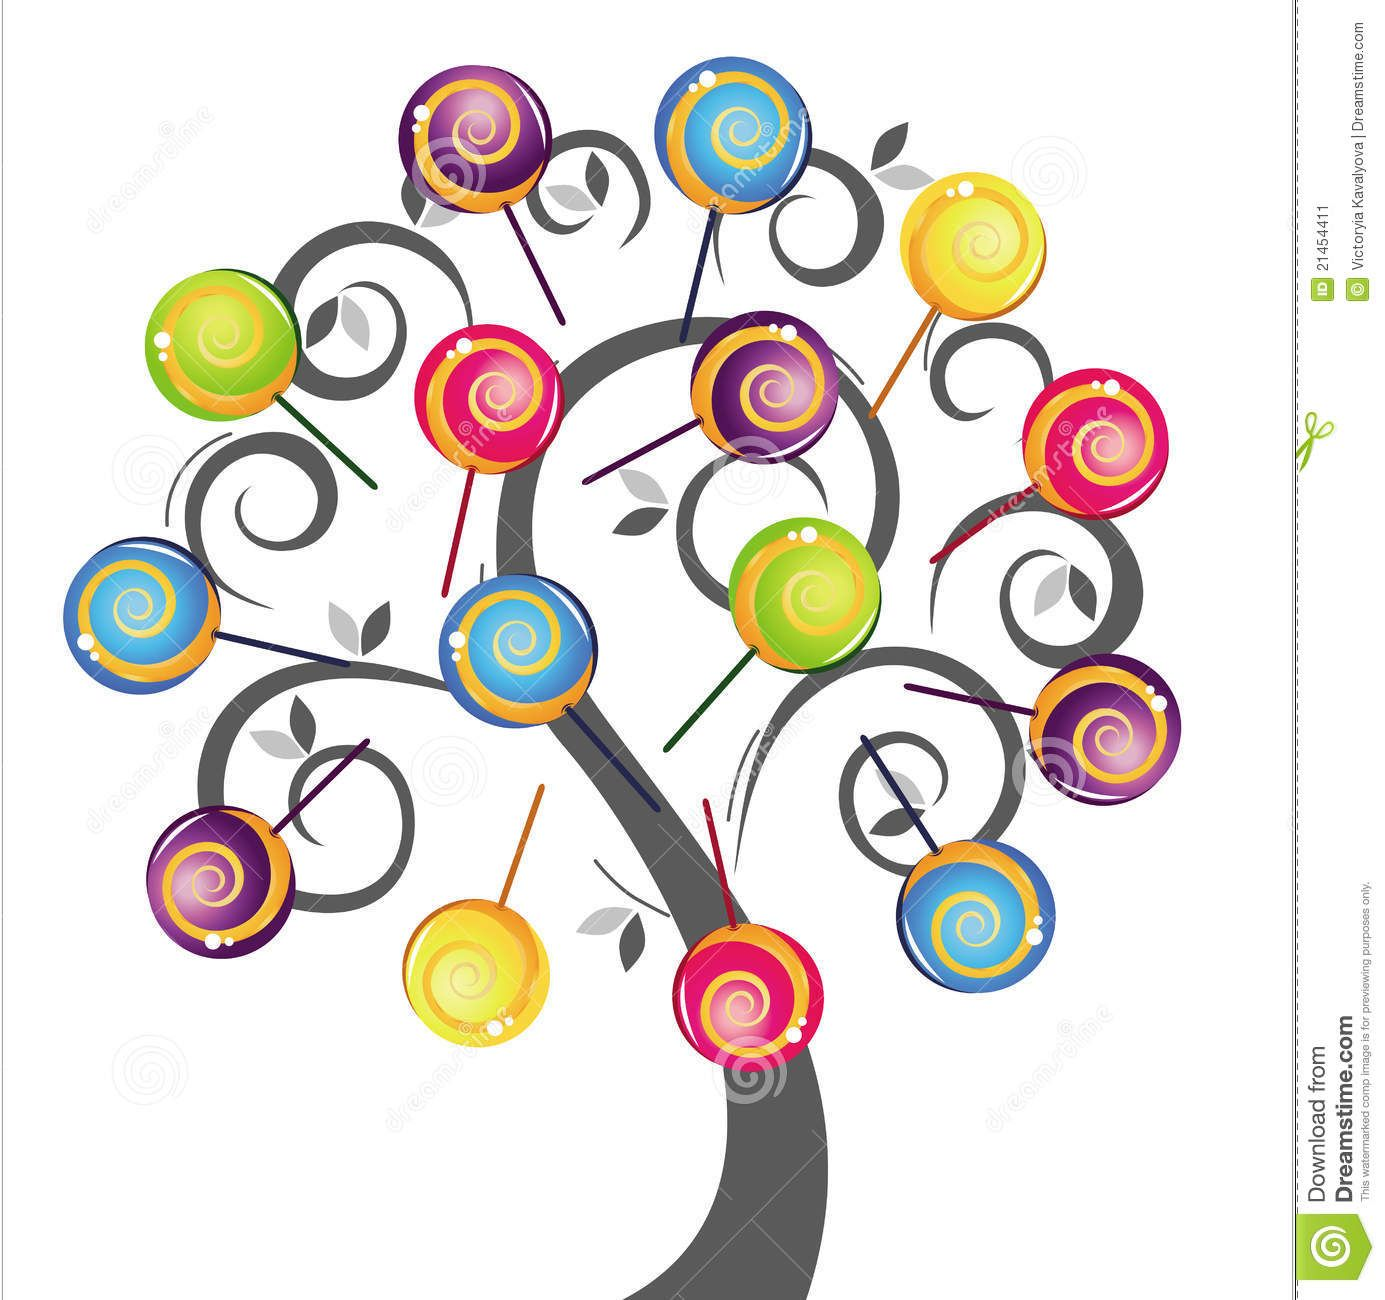 Lollipop clipart lollipop tree. Pin by kt emmerson